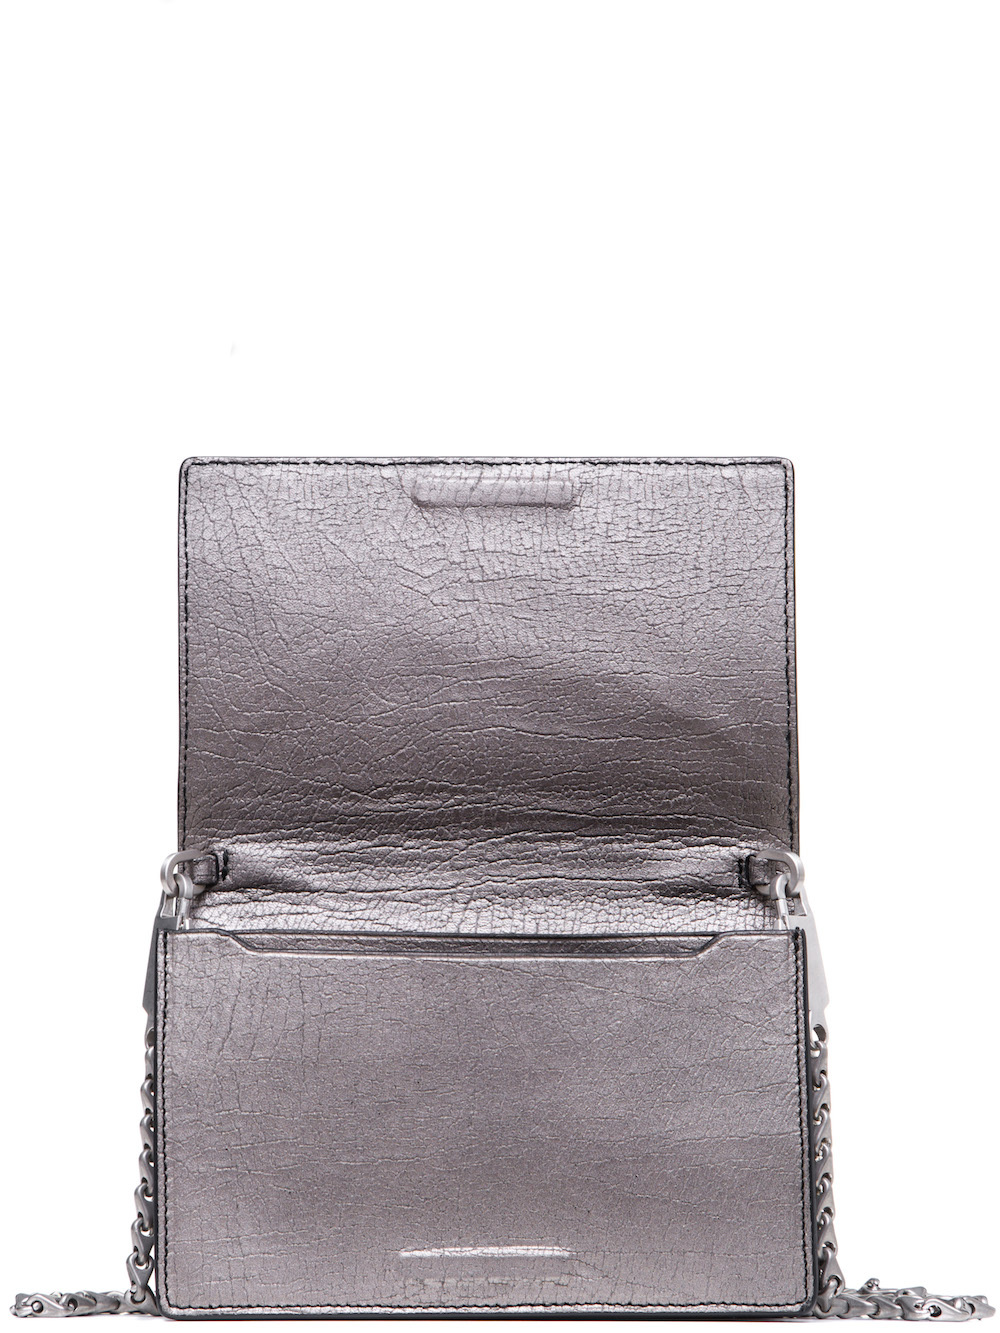 Rick Owens Lunch Bag In Silver Calf Leather Is Rectangular